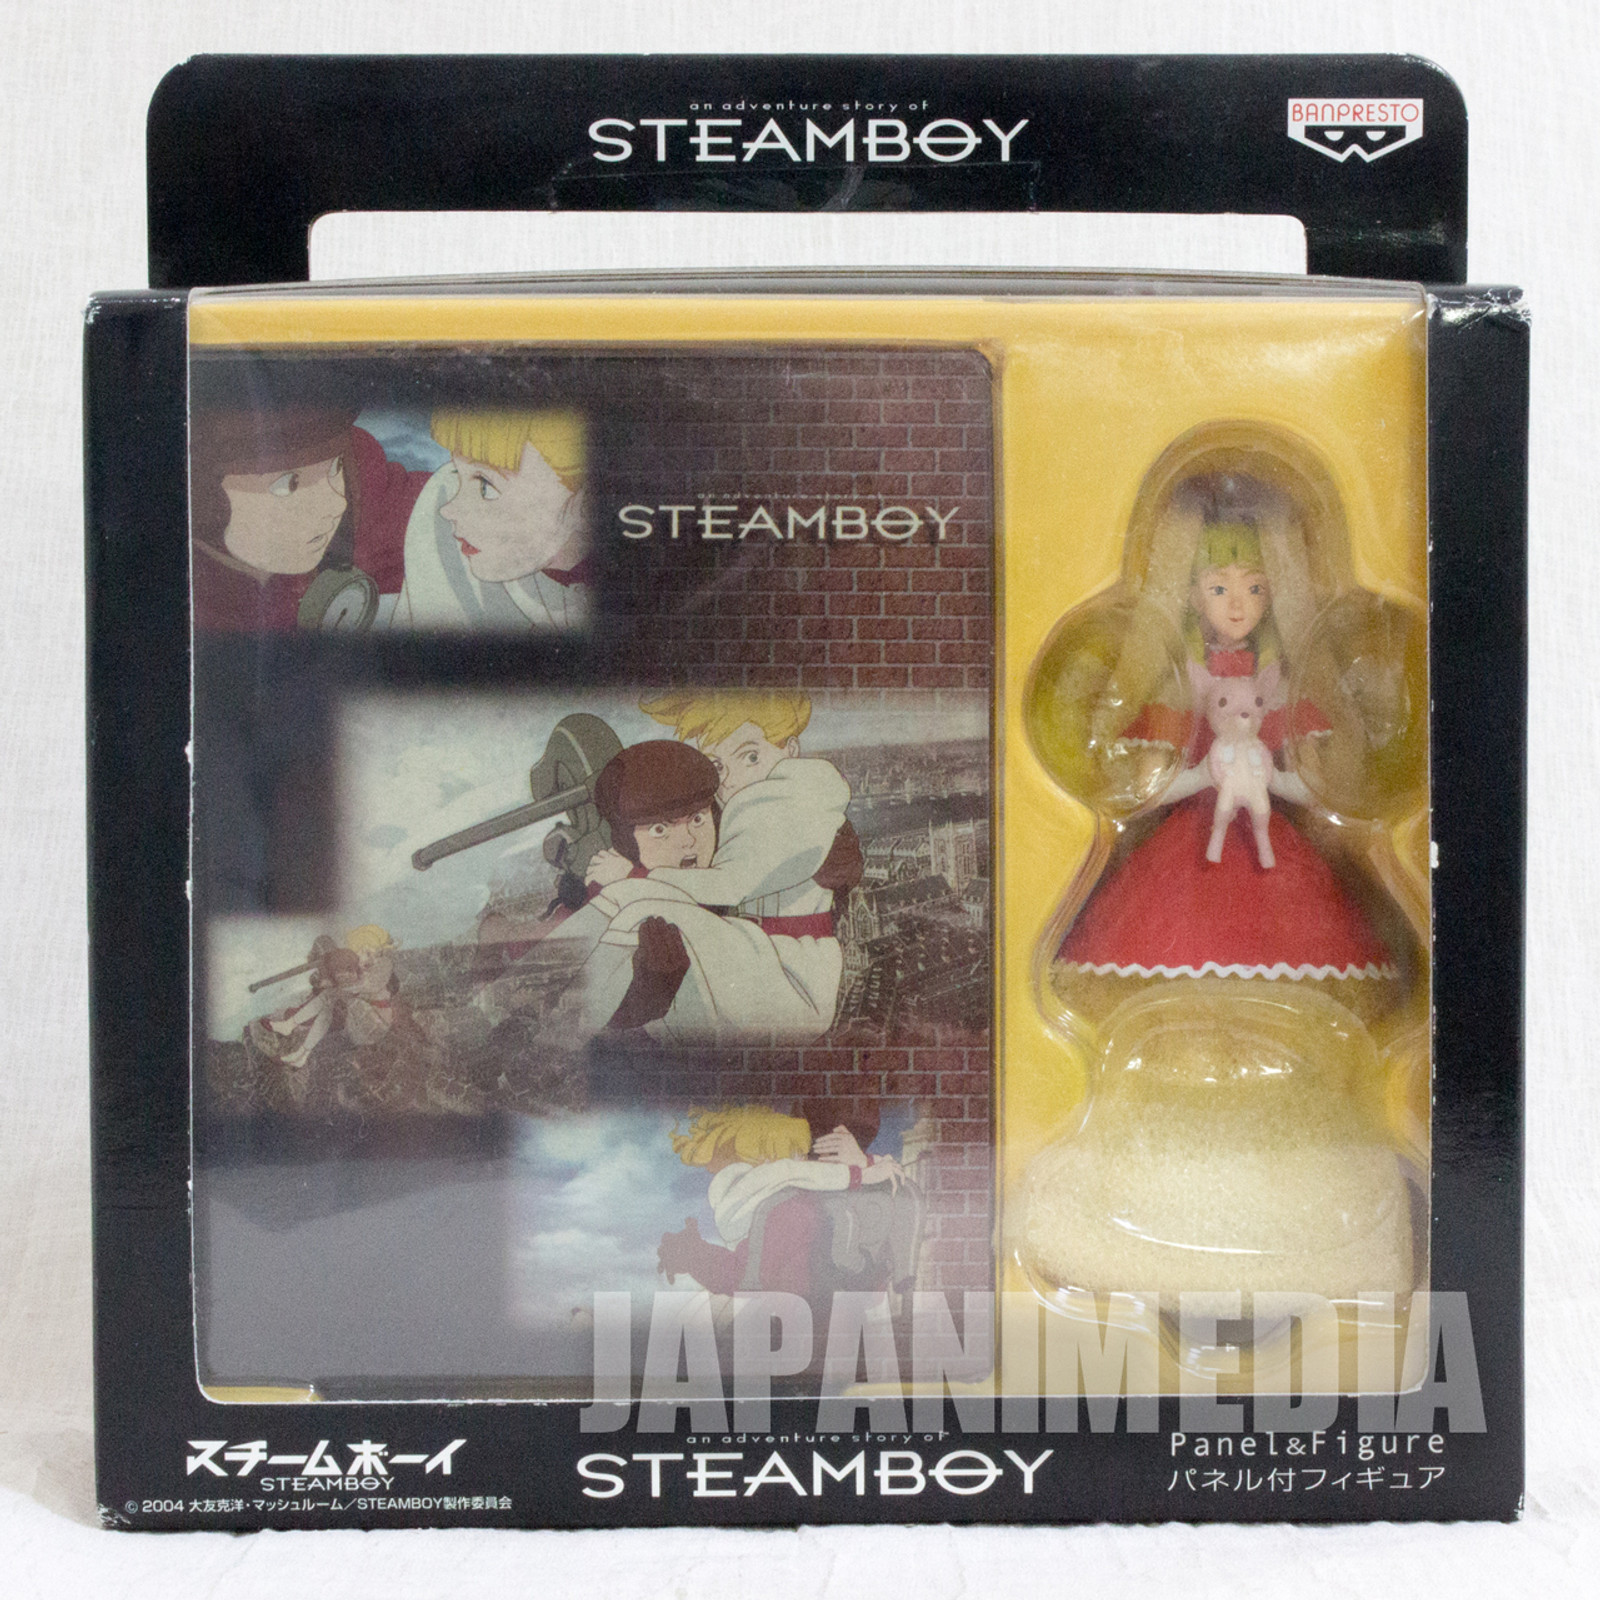 STEAMBOY Scarlett Panel & Figure Kathuhiro Otomo Banpresto JAPAN ANIME MANGA